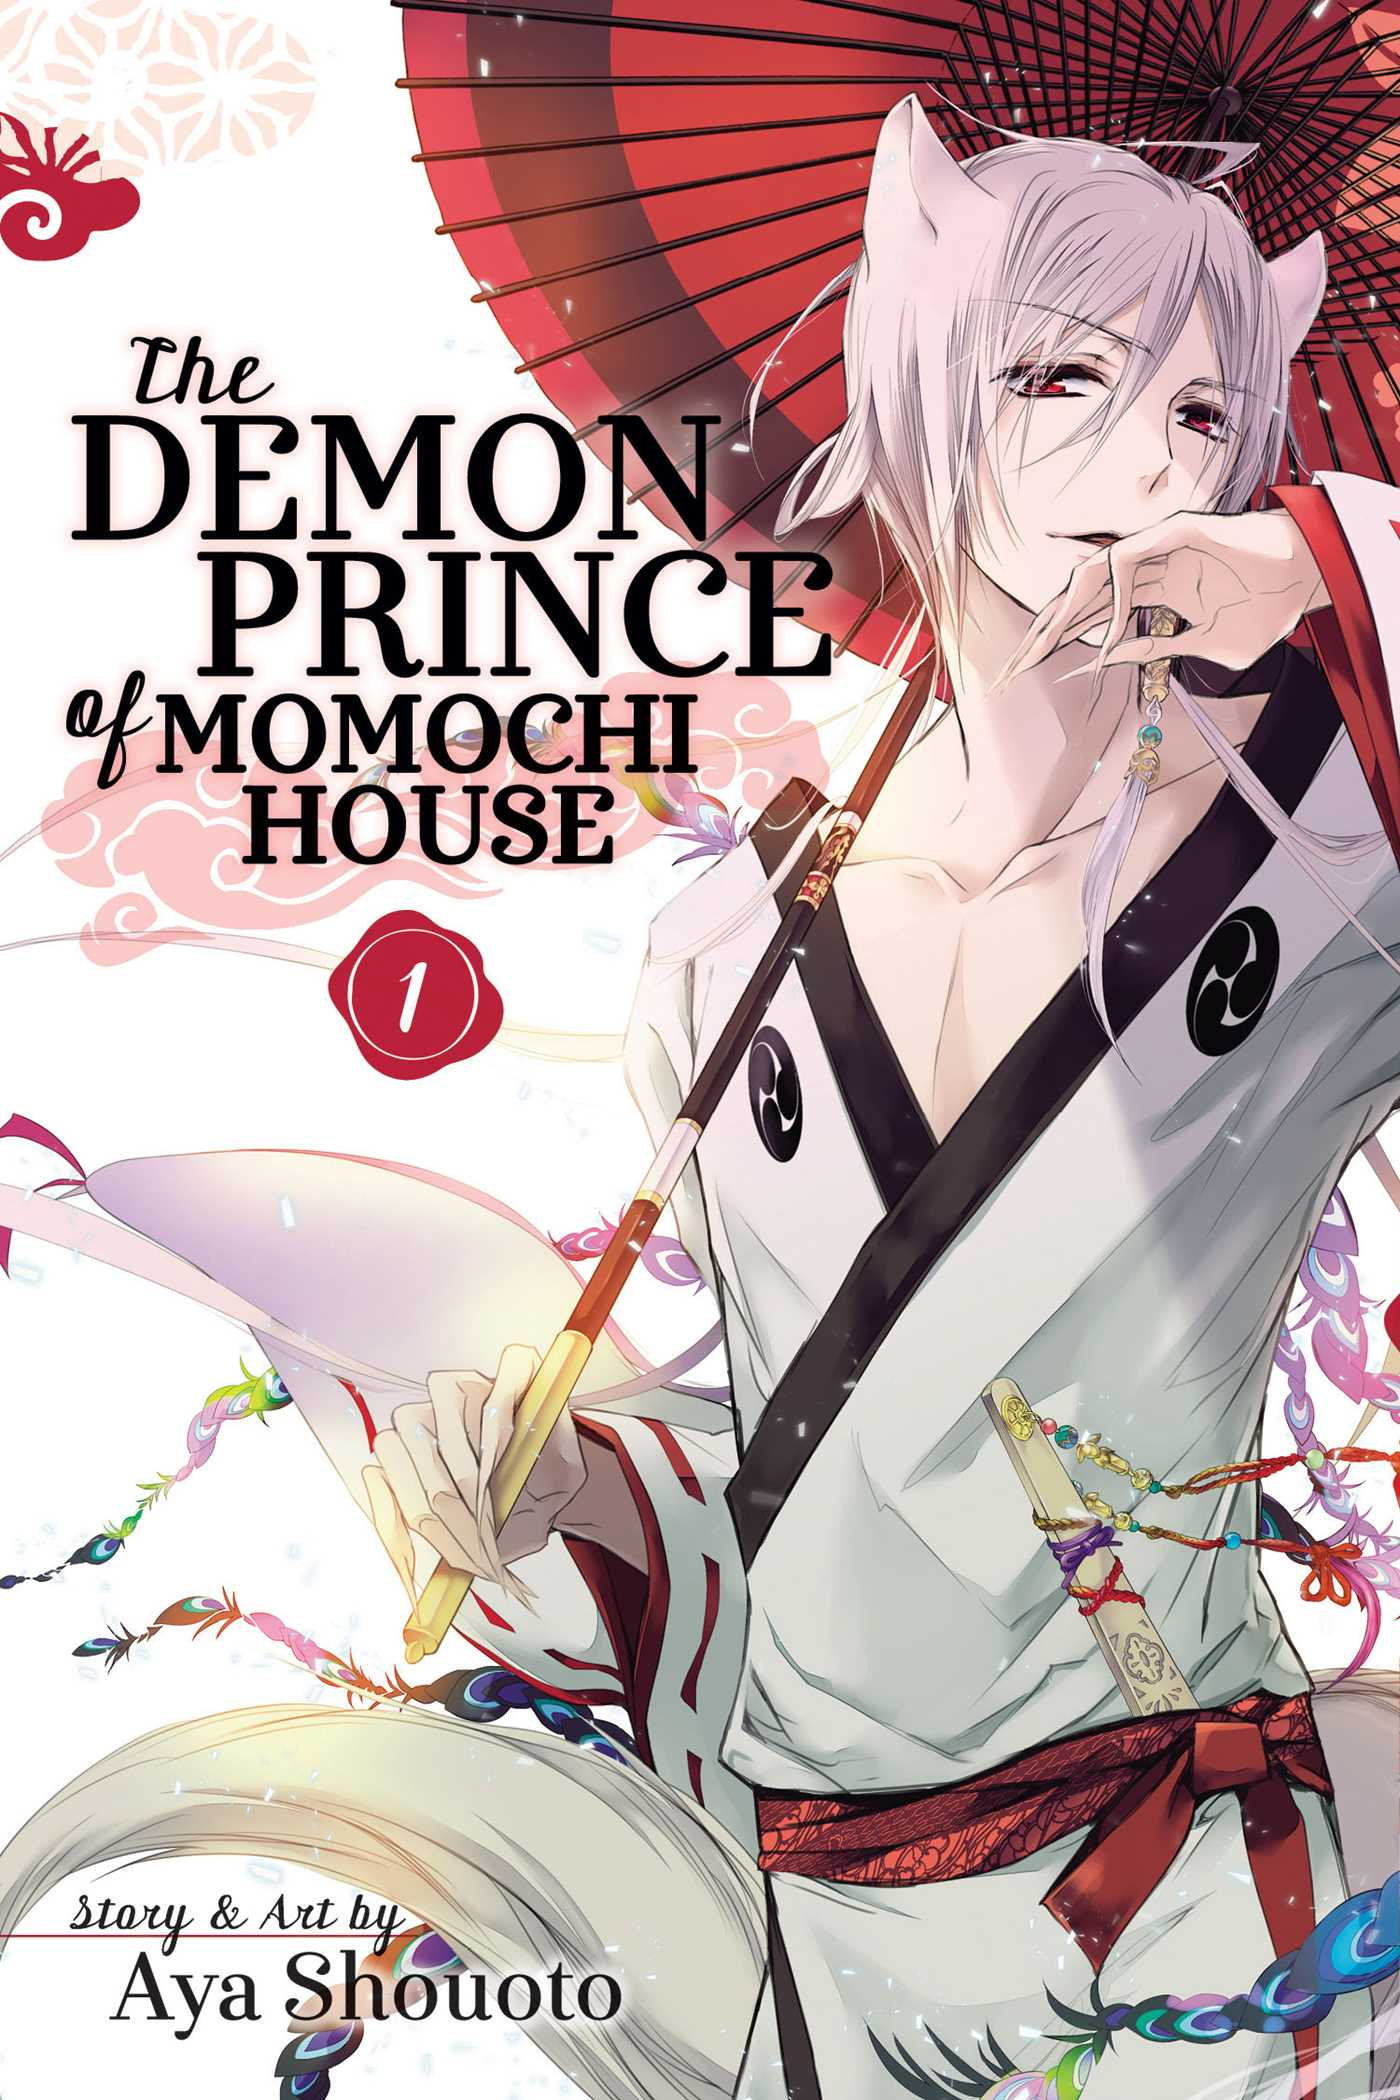 The Demon Prince of Momochi House, Volume 1 book cover